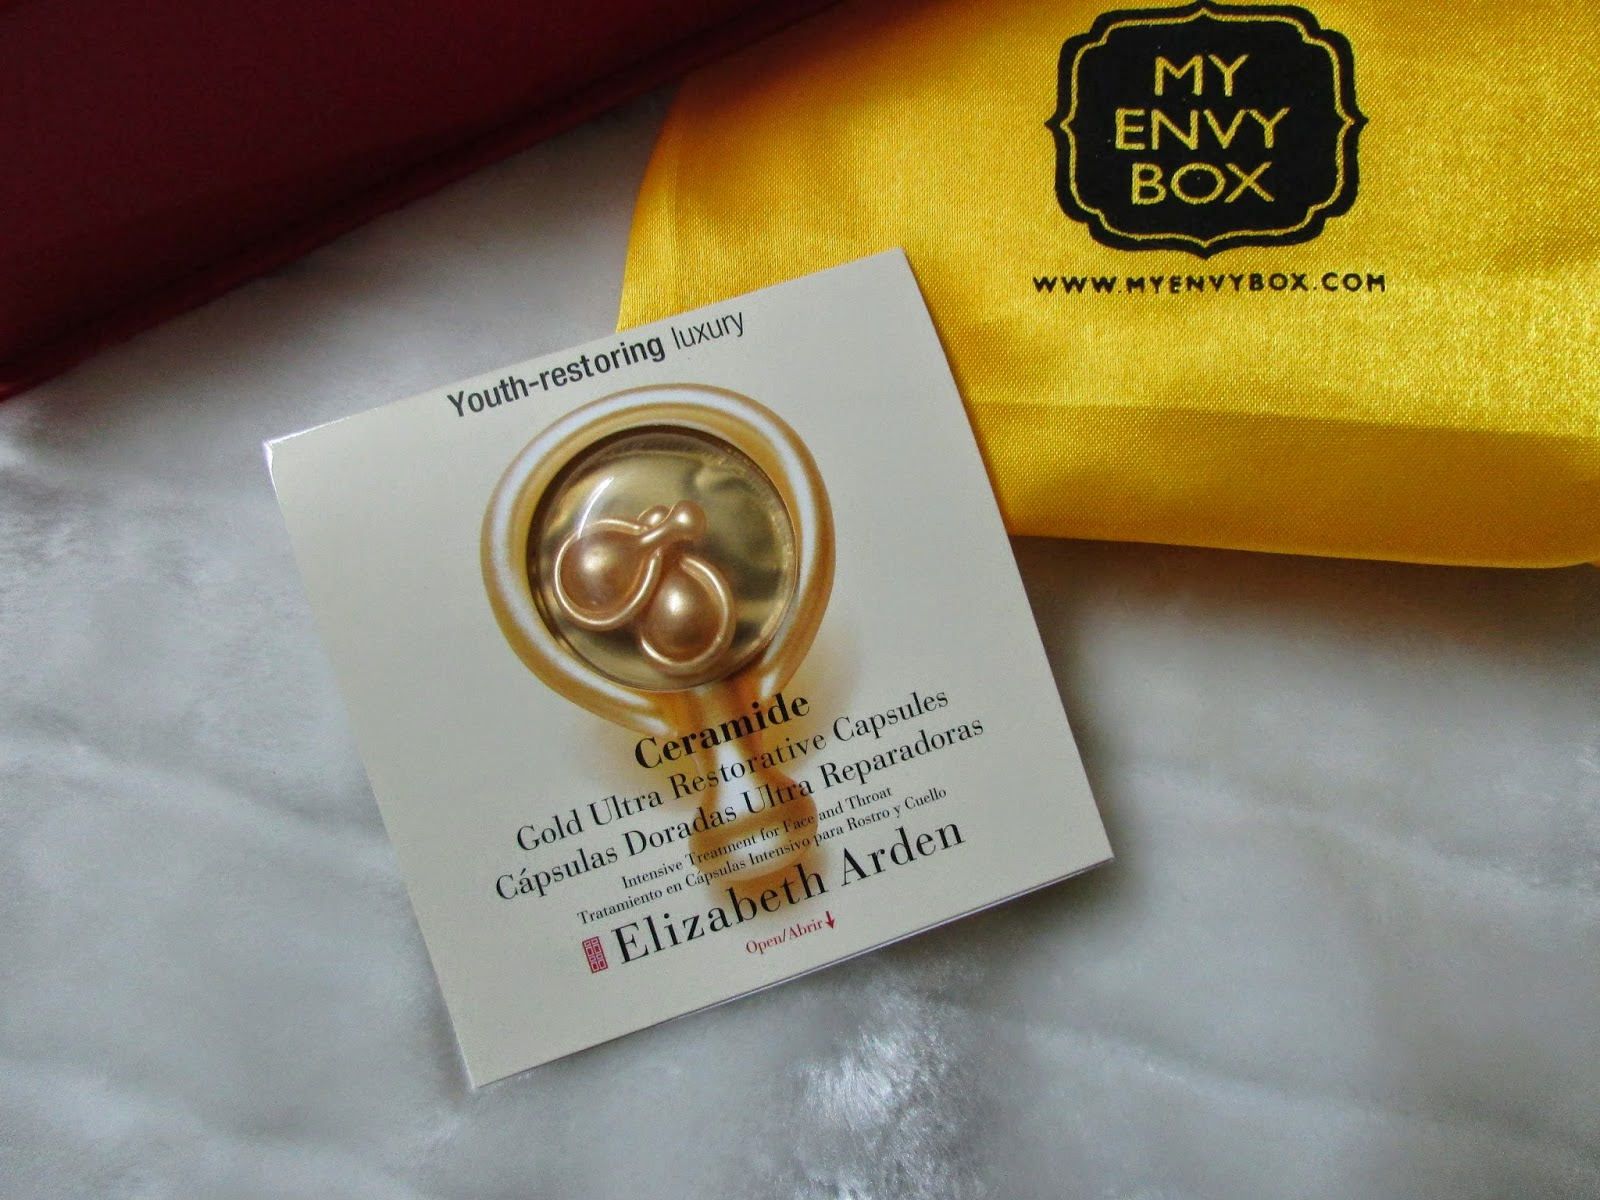 myenvybox, myenvybox india, myenvybox january beauty must haves box, myenvybox price, myenvybox review, myenvybox unboxing,Babor Skin Brightening Cream, Bottega Di Lungavita face cream, Clavin Klein Endless Euphoria, Elizabeth Arden Gold Ultra Restorative Capsules,ZA liquid foundation, Sebastian Professional Penetraitt Shampoo , fashion,beauty and fashion,beauty blog, fashion blog , indian beauty blog,indian fashion blog, beauty and fashion blog, indian beauty and fashion blog, indian bloggers, indian beauty bloggers, indian fashion bloggers,indian bloggers online, top 10 indian bloggers, top indian bloggers,top 10 fashion bloggers, indian bloggers on blogspot,home remedies, how to